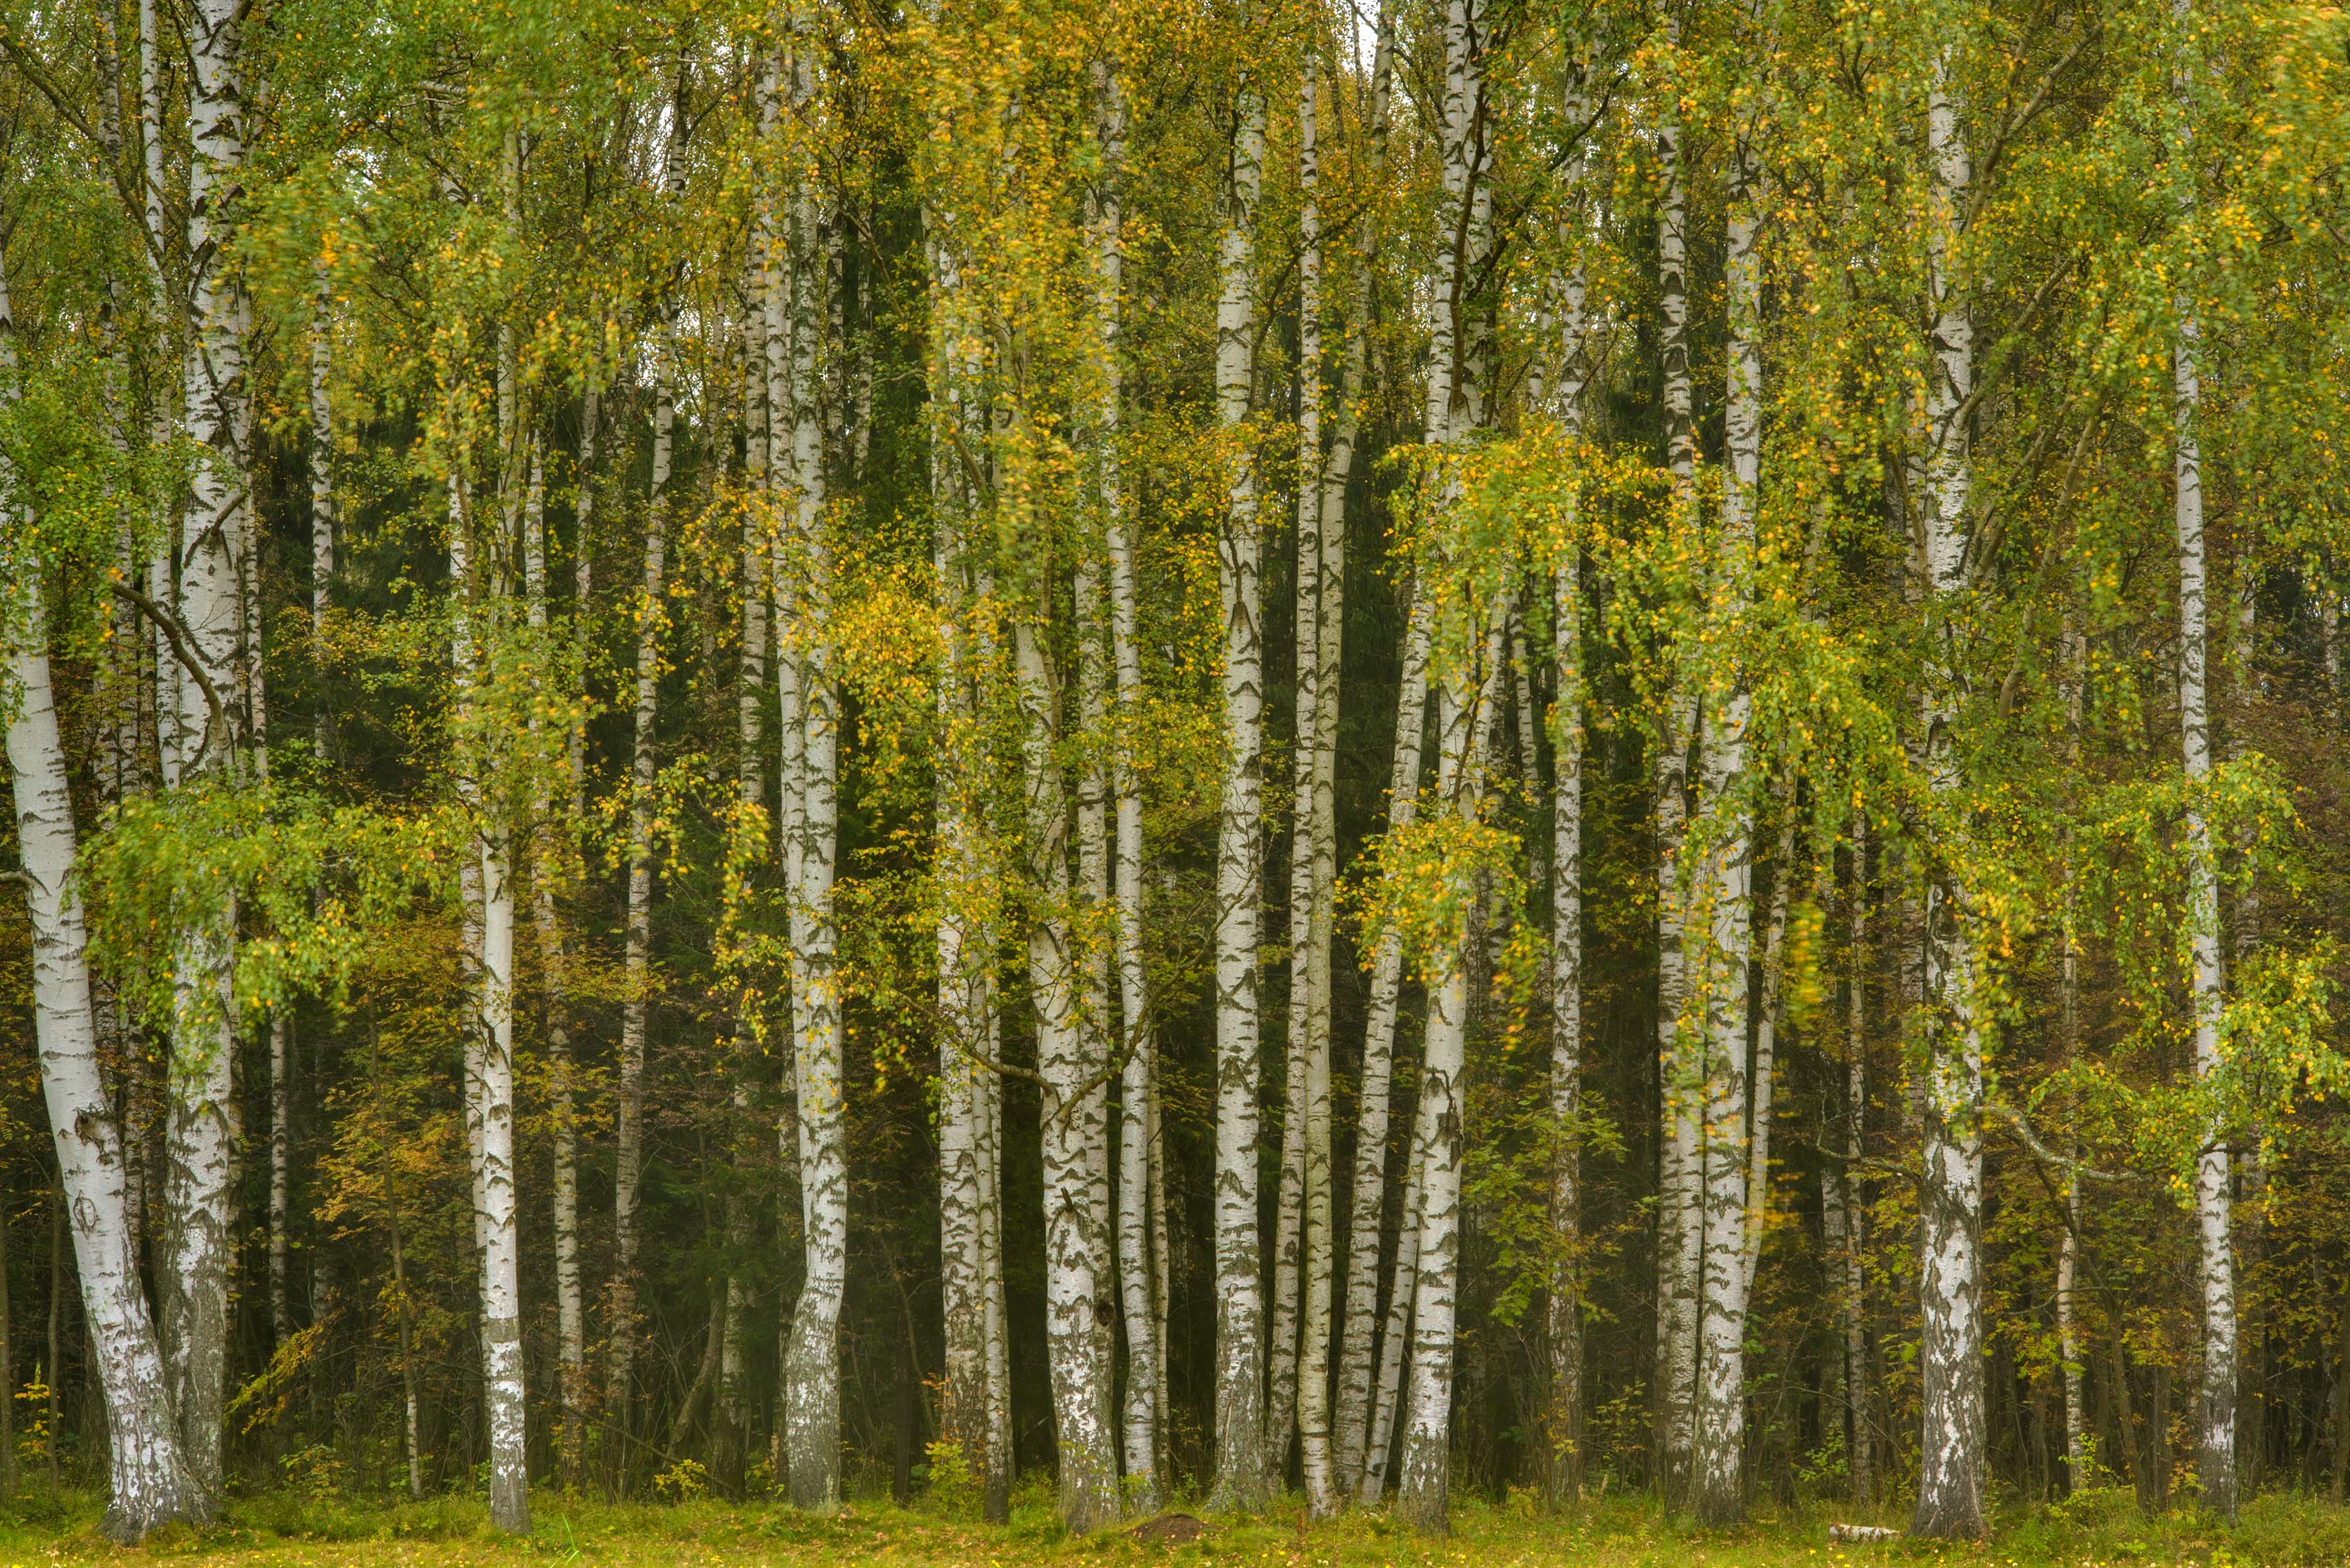 Birches near Krasnogo Bugra Alley in Pavlovsk...a suburb of St.Petersburg, Russia